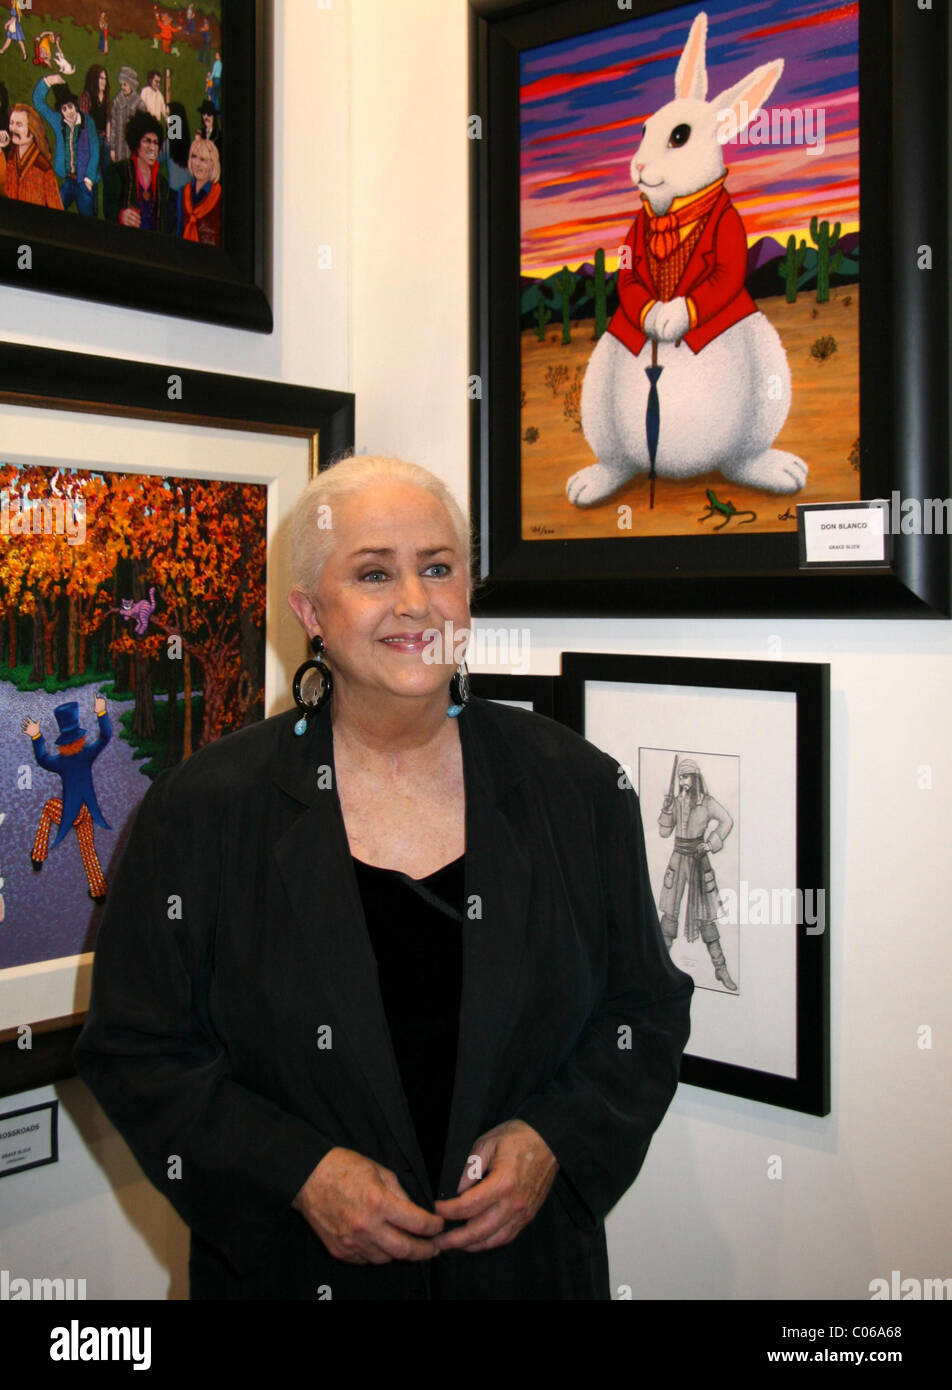 Grace Slick American singer and songwriter, exhibits her paintings and artwork at Mandalay Bay Hotel and Casino - Stock Image